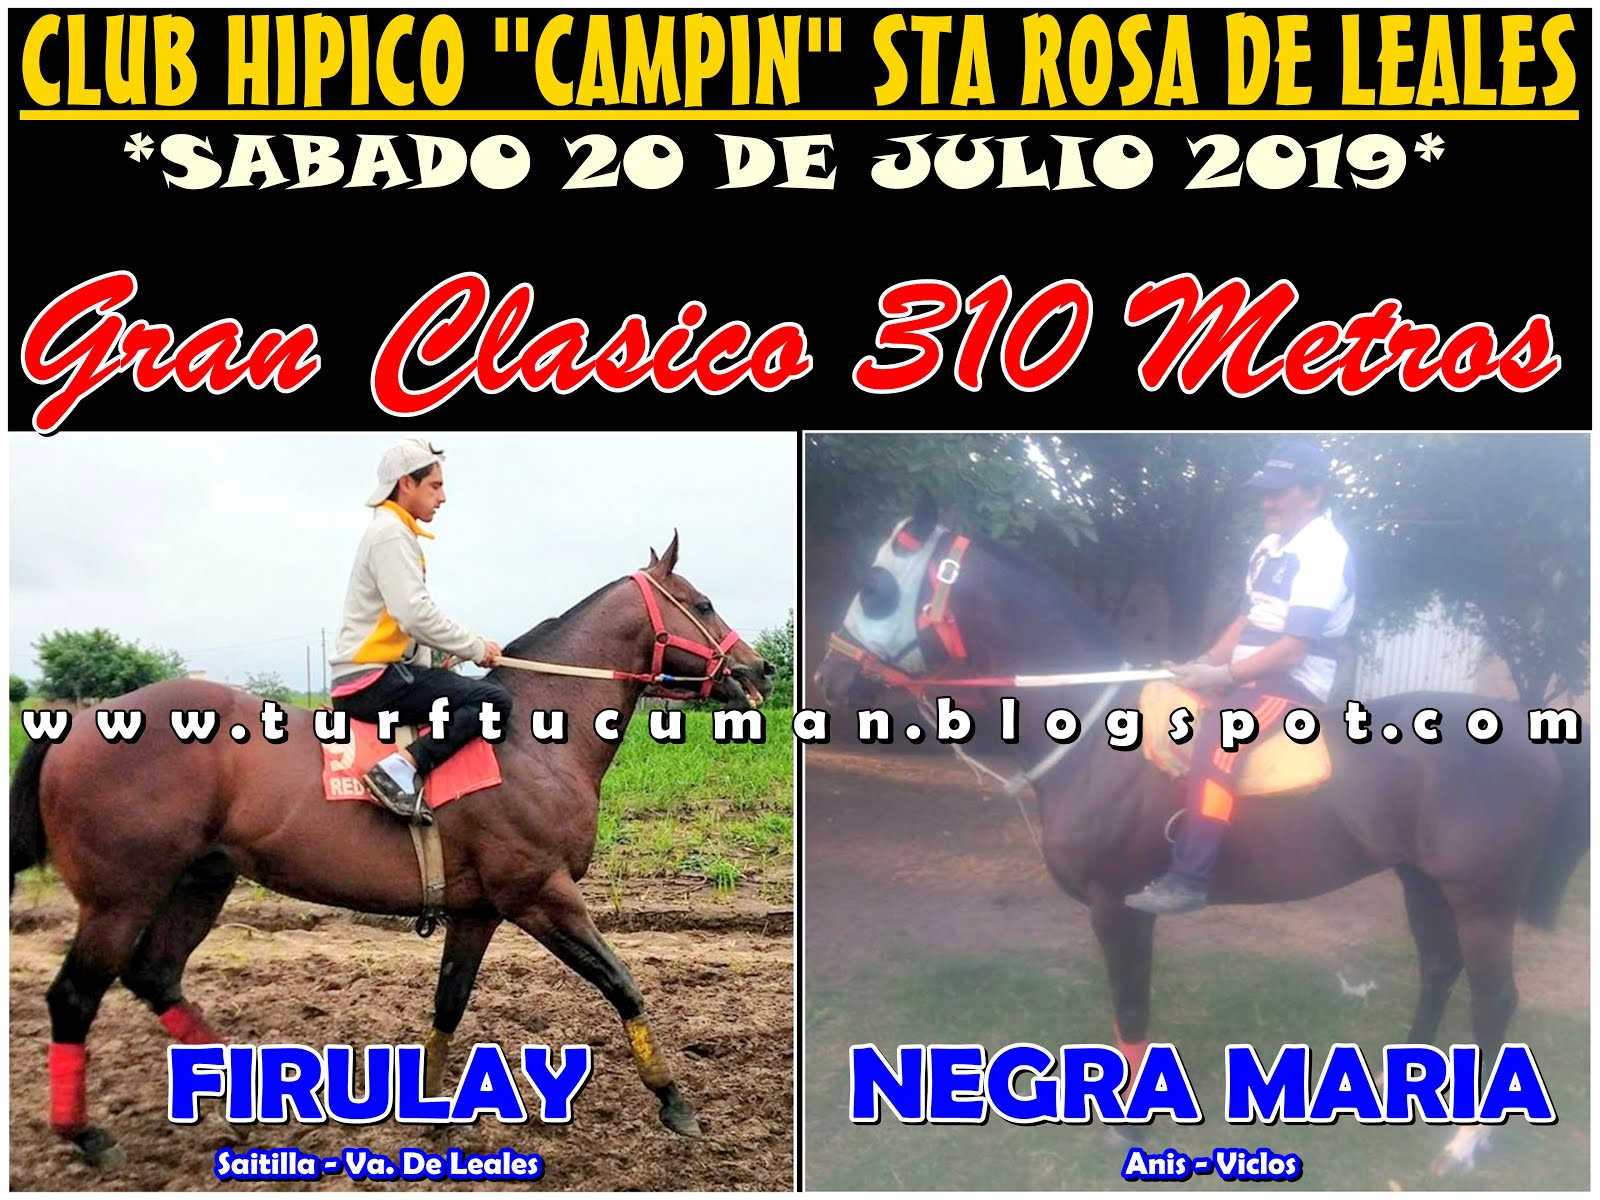 FIRULAY VS NEGRA MARIA